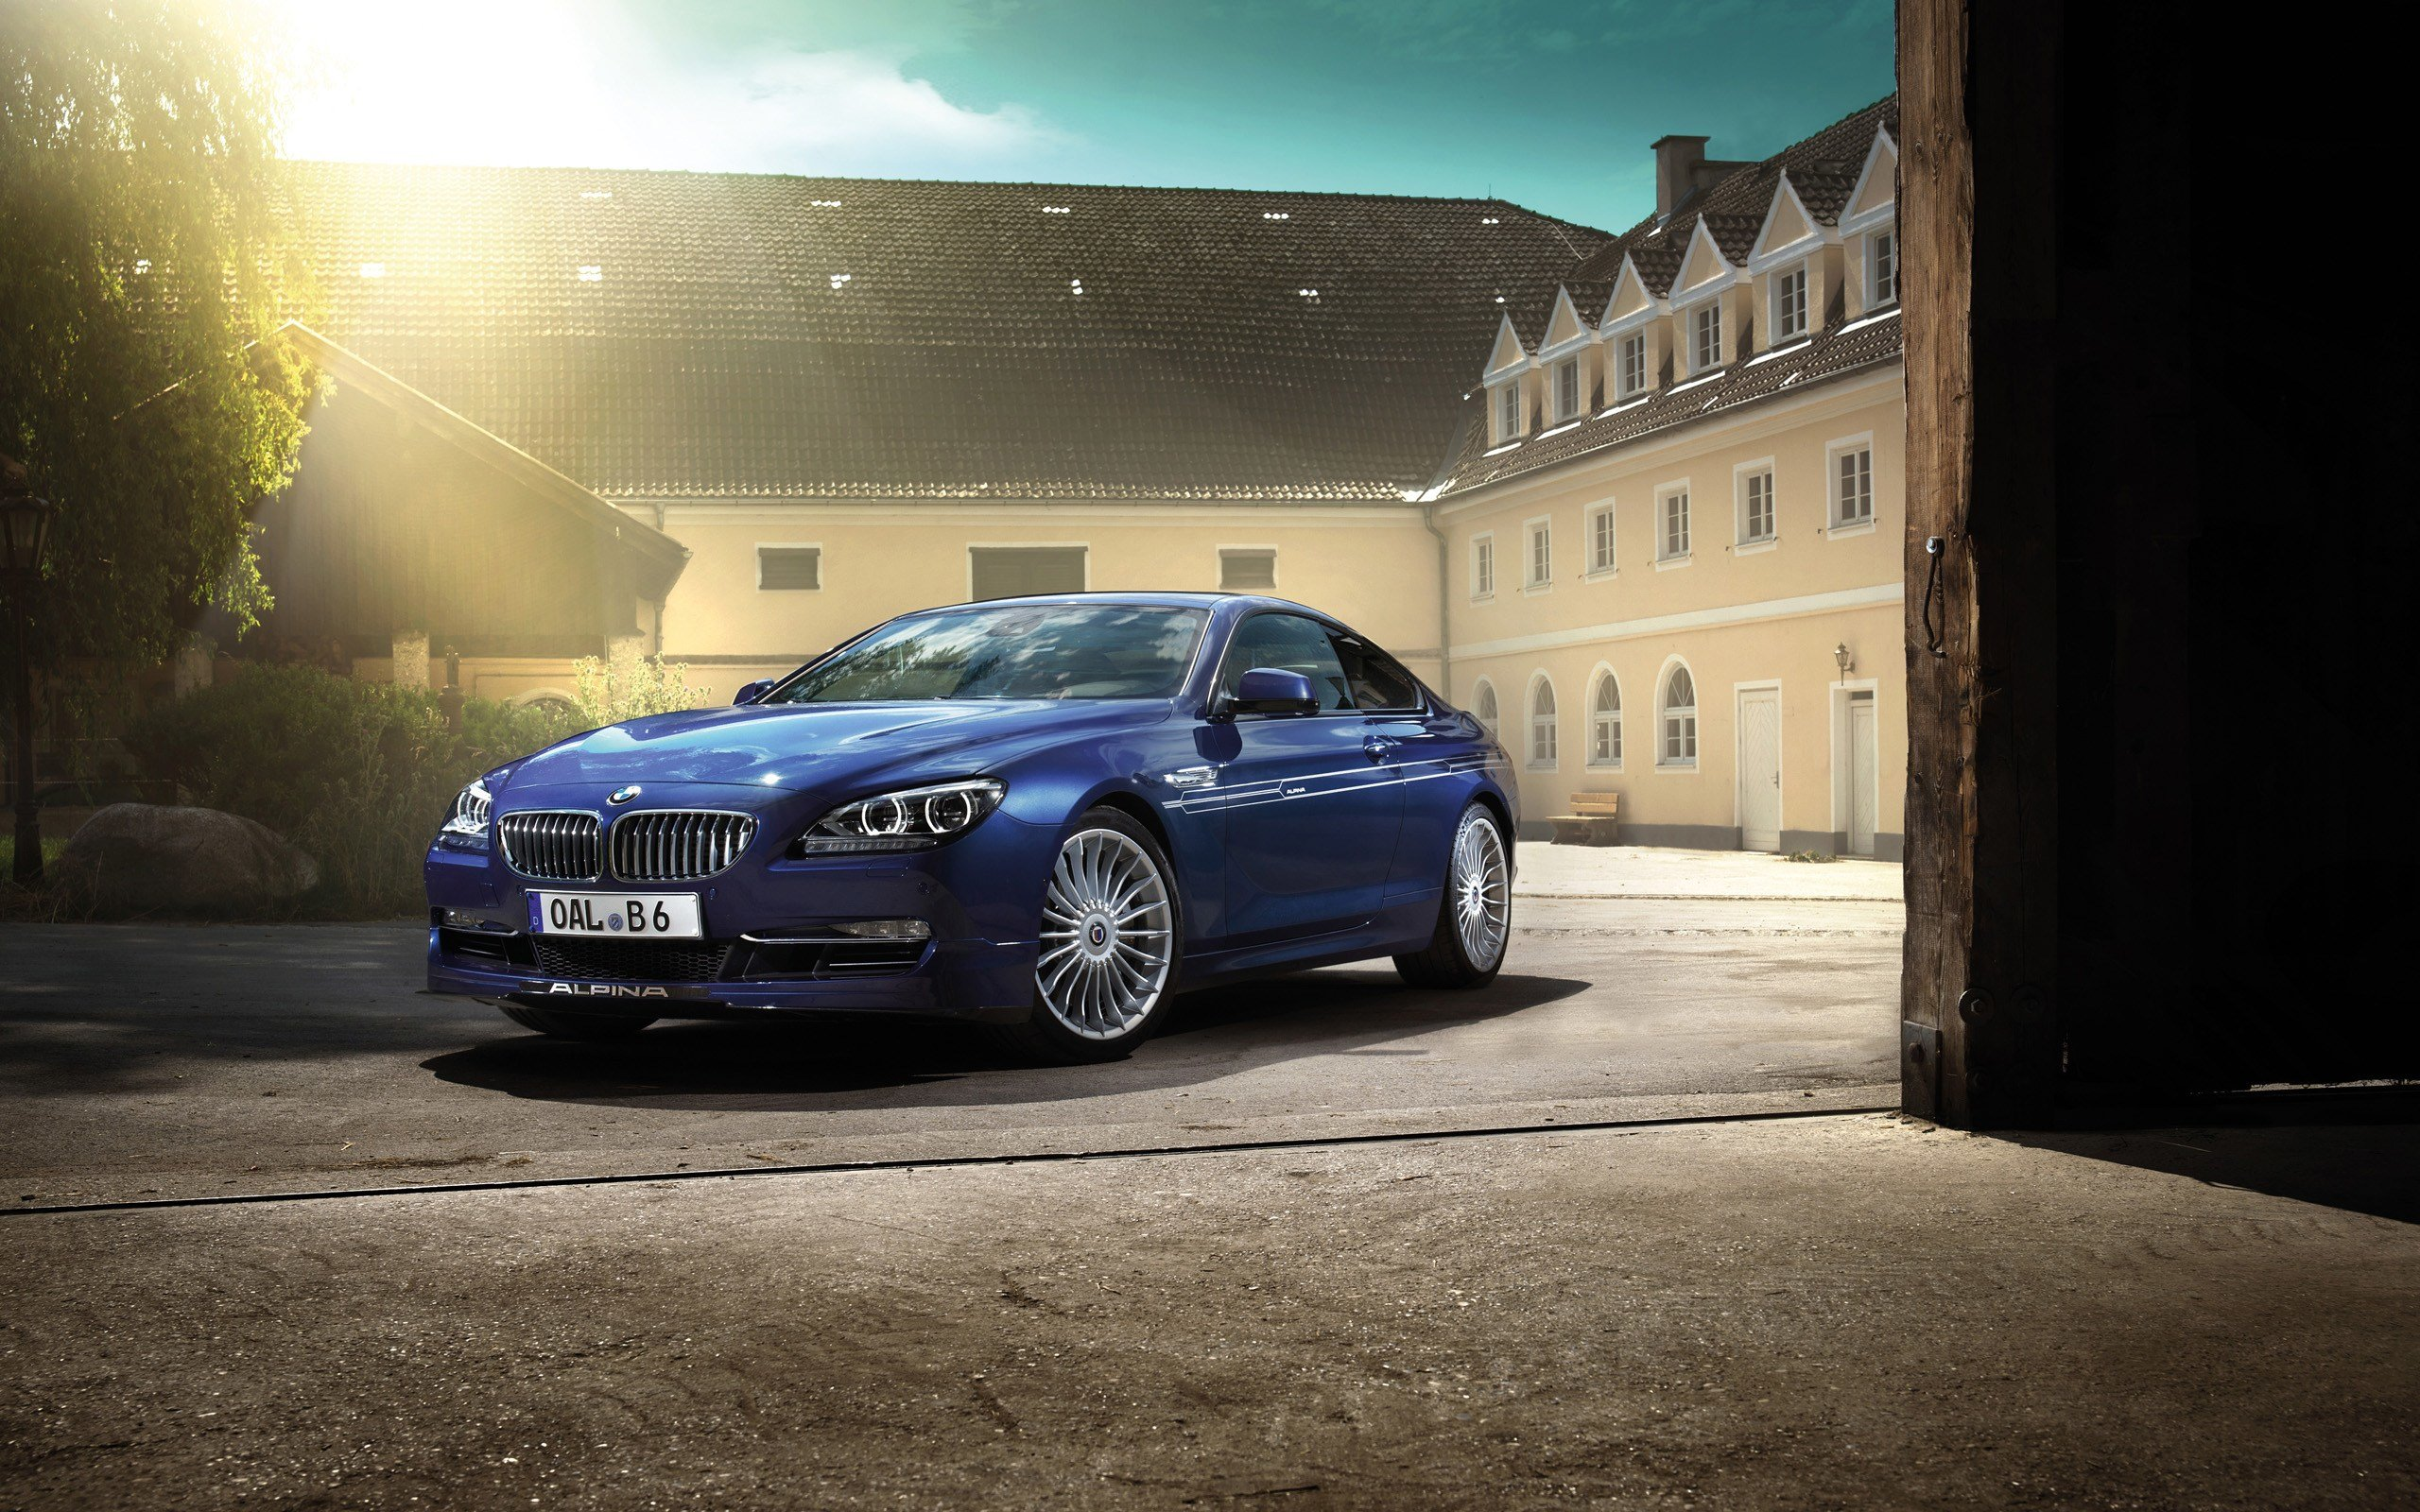 Latest 2013 Bmw Alpina B6 Biturbo Wallpaper Hd Car Wallpapers Free Download